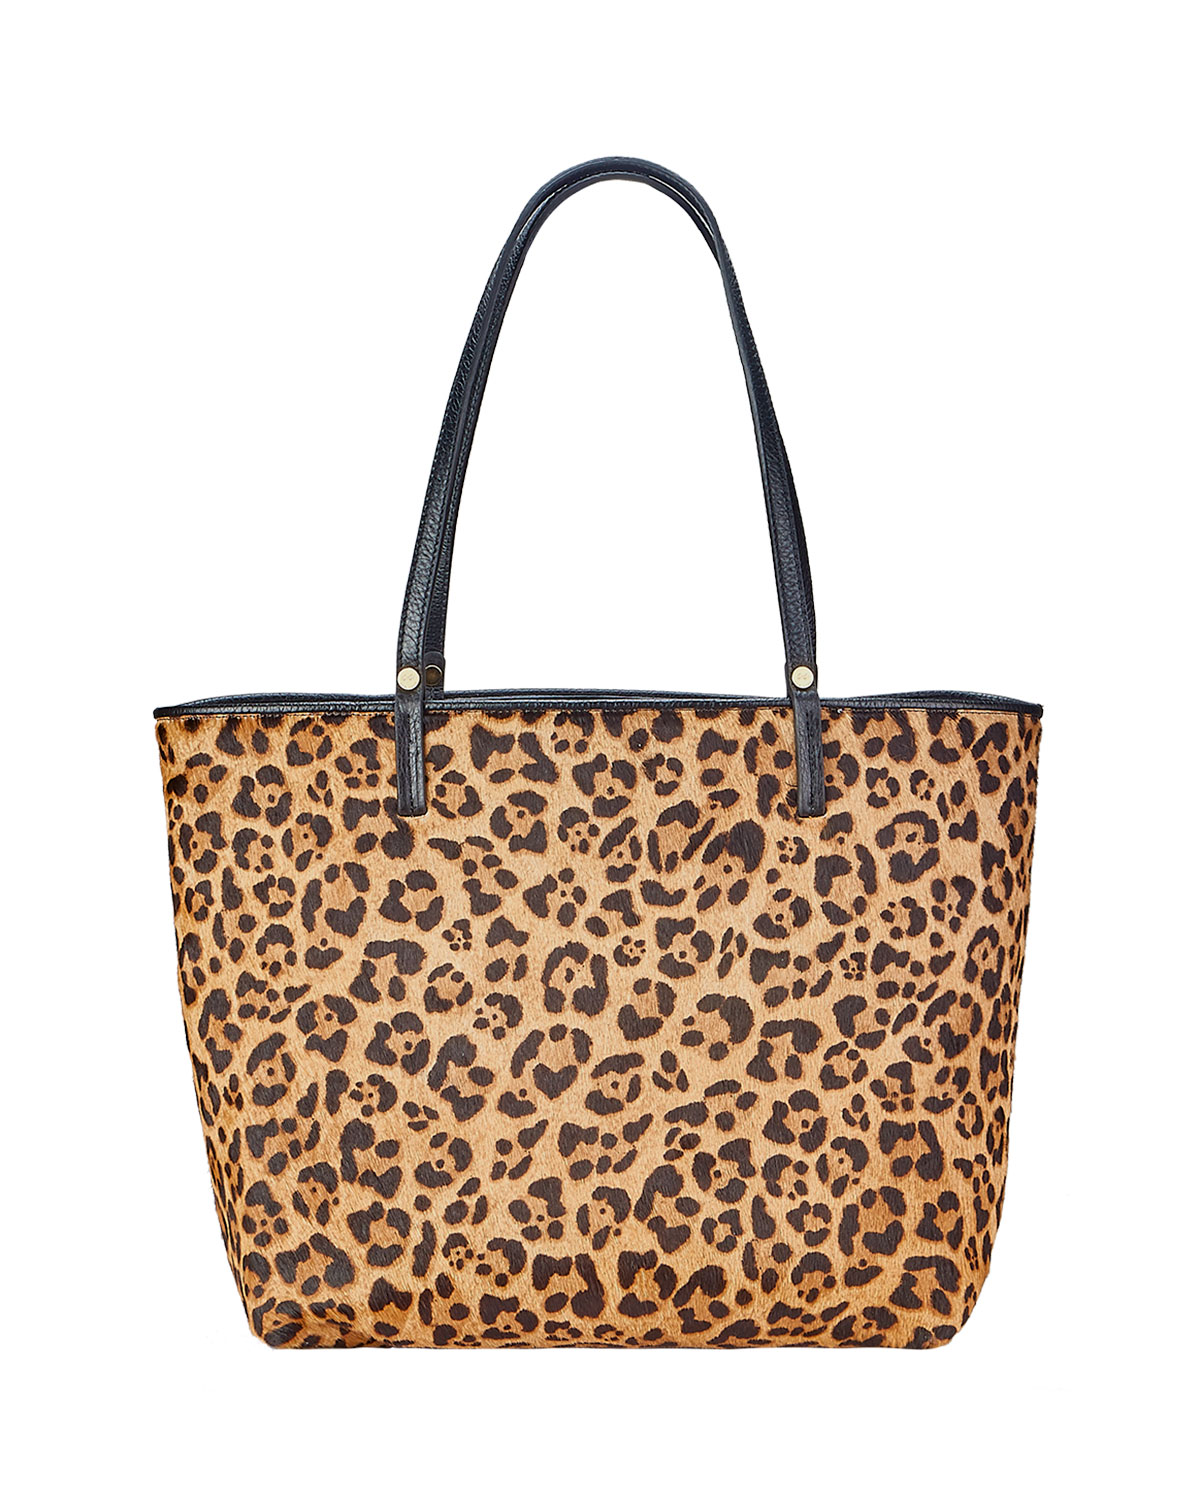 Gigi New York Tori Leopard-Print Tote Bag